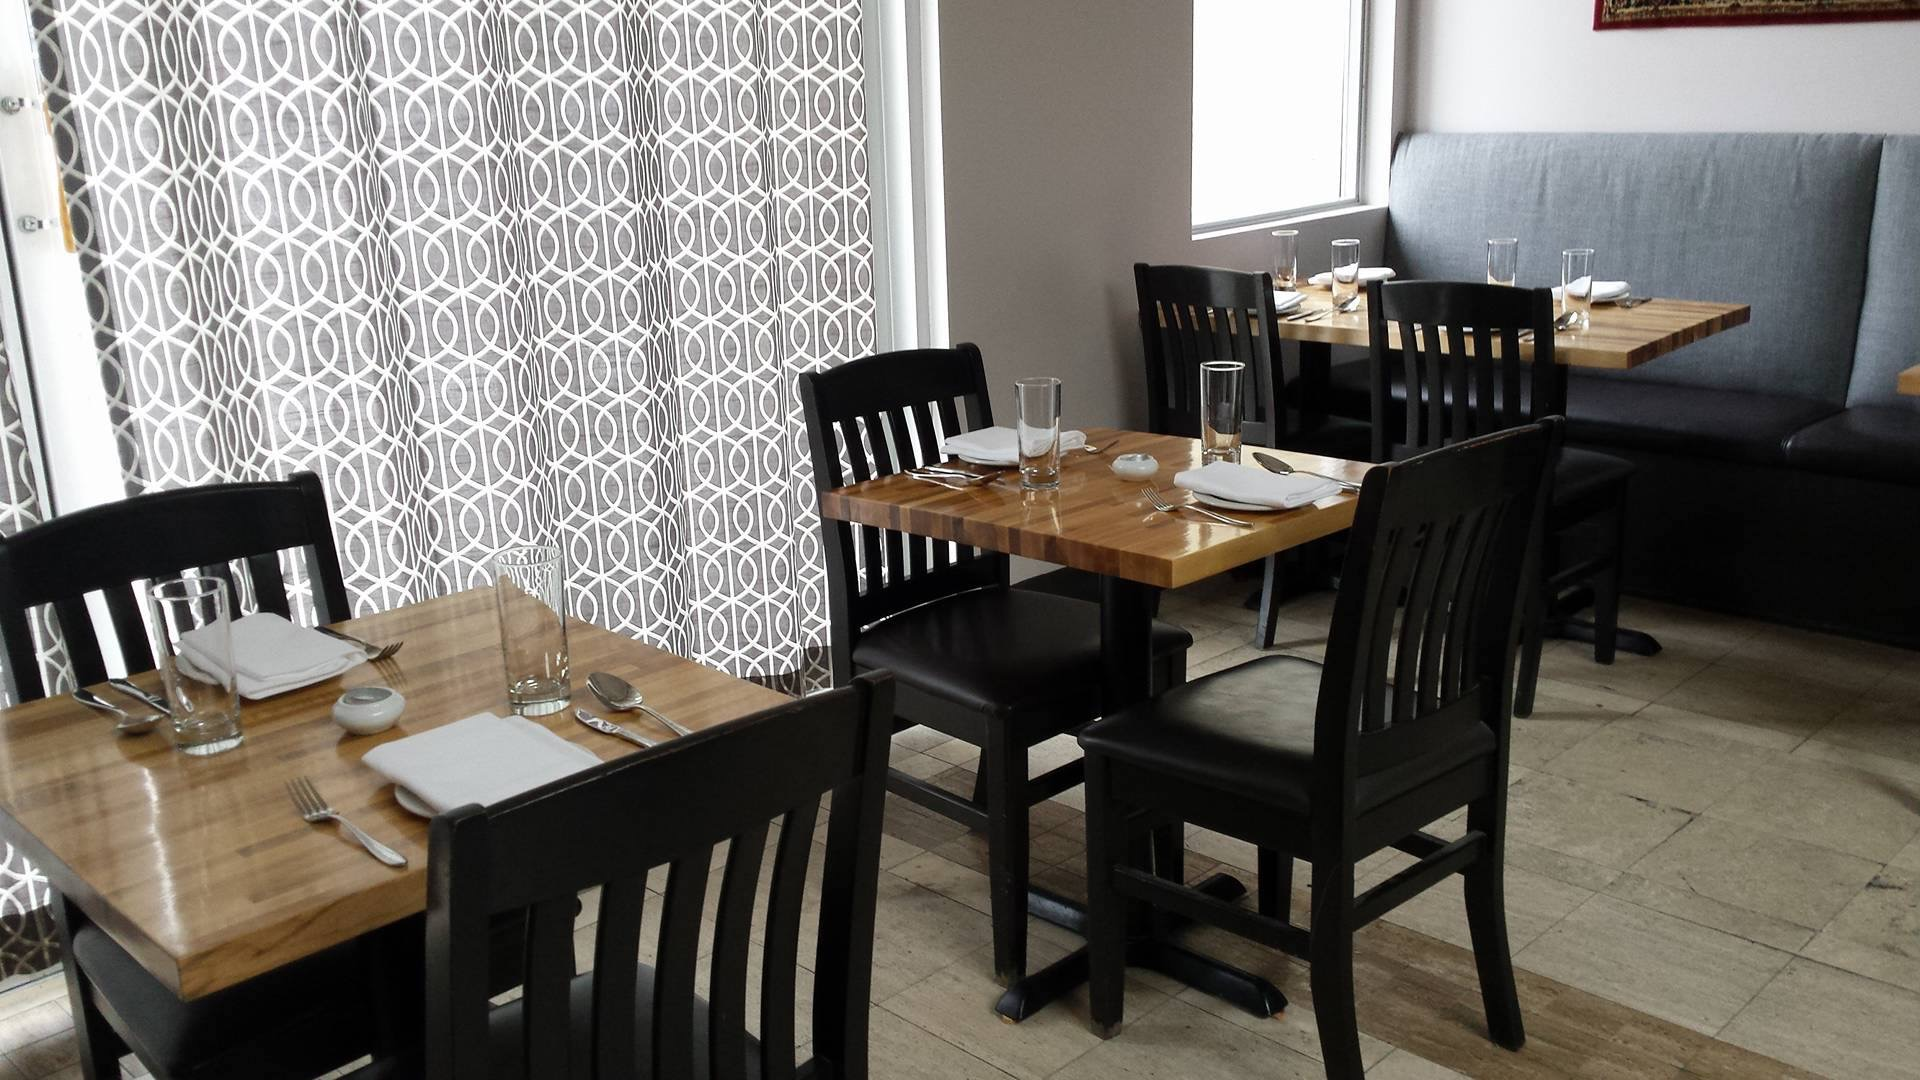 awai seating options in dining room